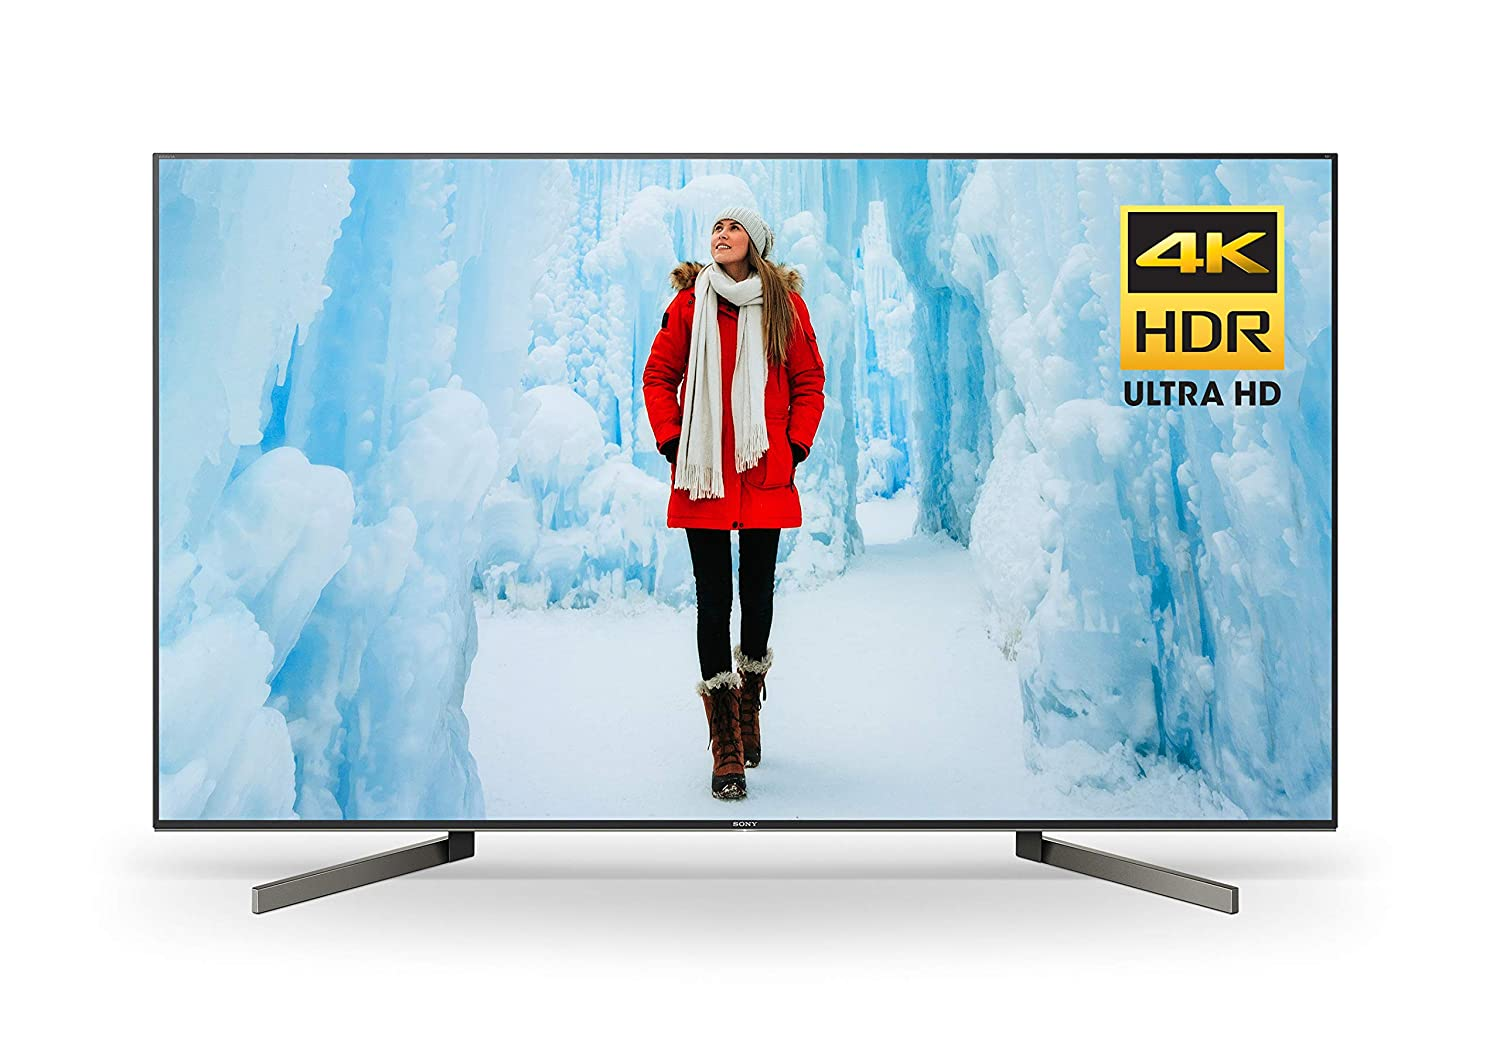 Sony XBR49X900F 49-Inch 4K Ultra HD Smart LED TV (2018 Model)